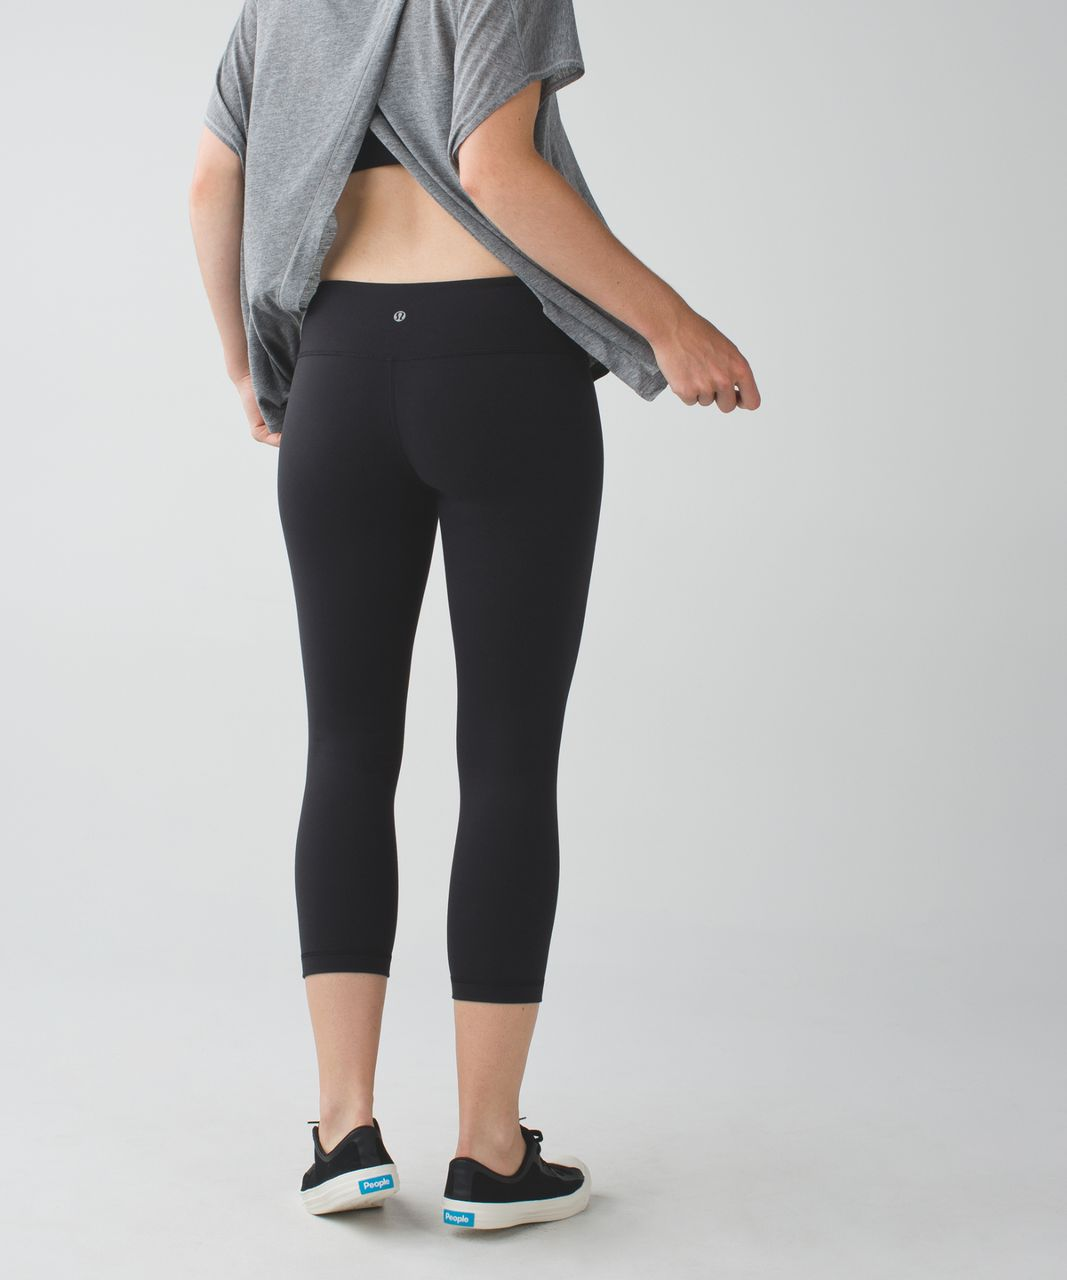 Lululemon Wunder Under Crop II *Full-On Luon - Black